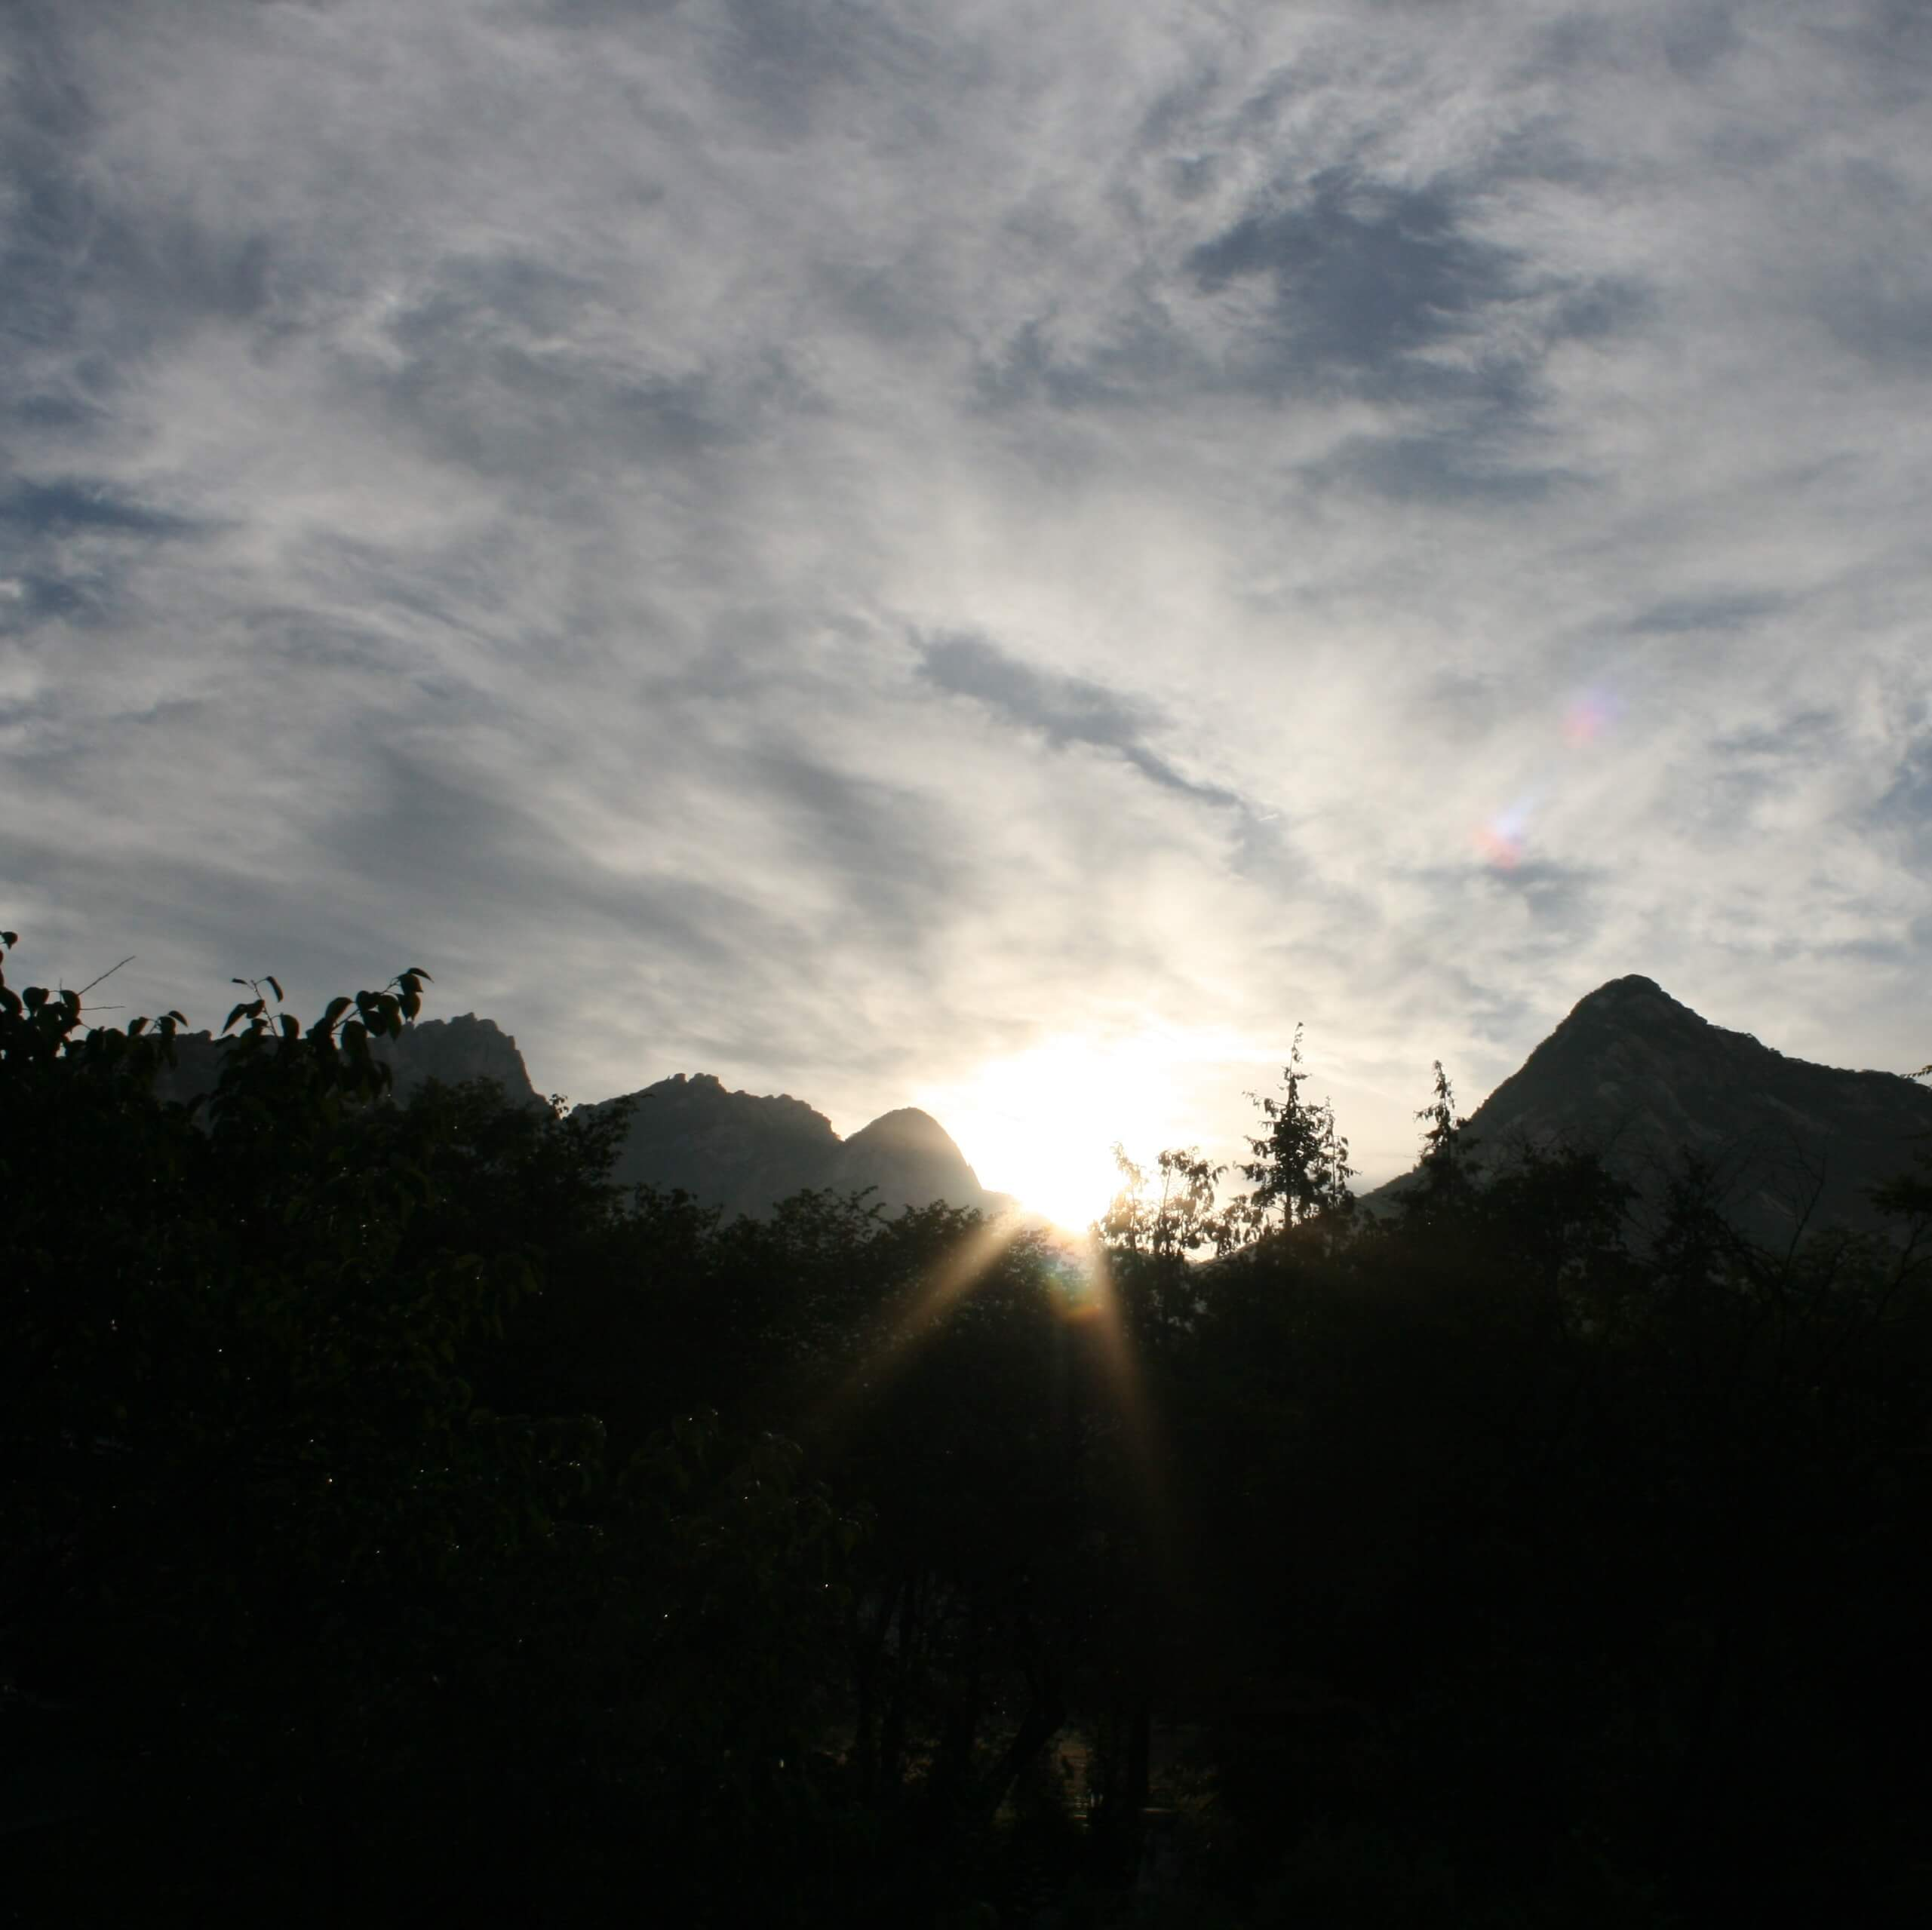 mountains with sun setting behind